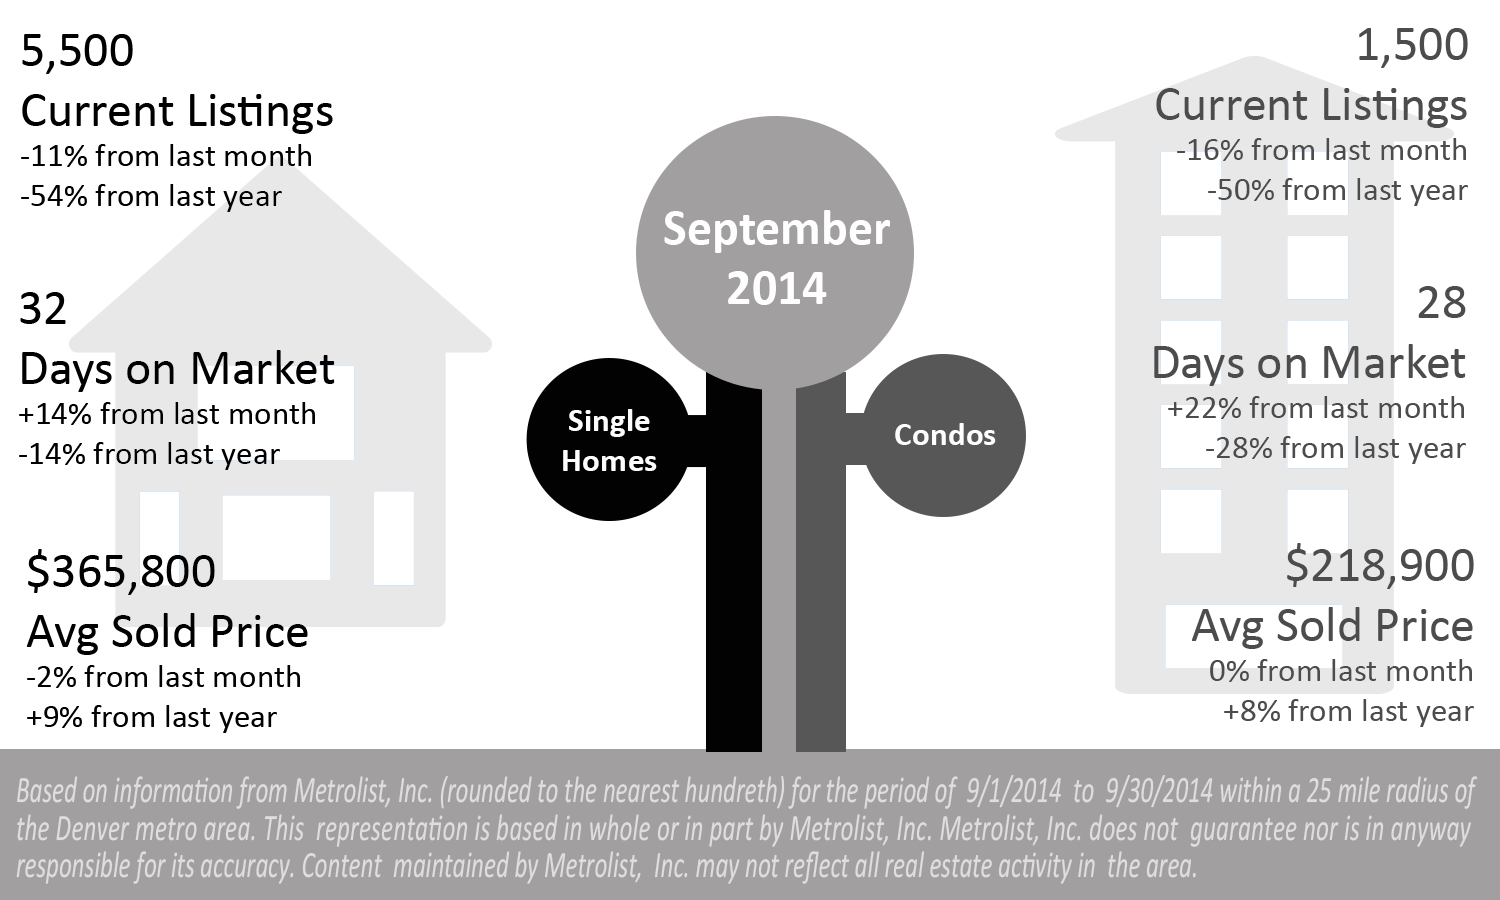 Market Update for September 2014  Denver Real Estate News